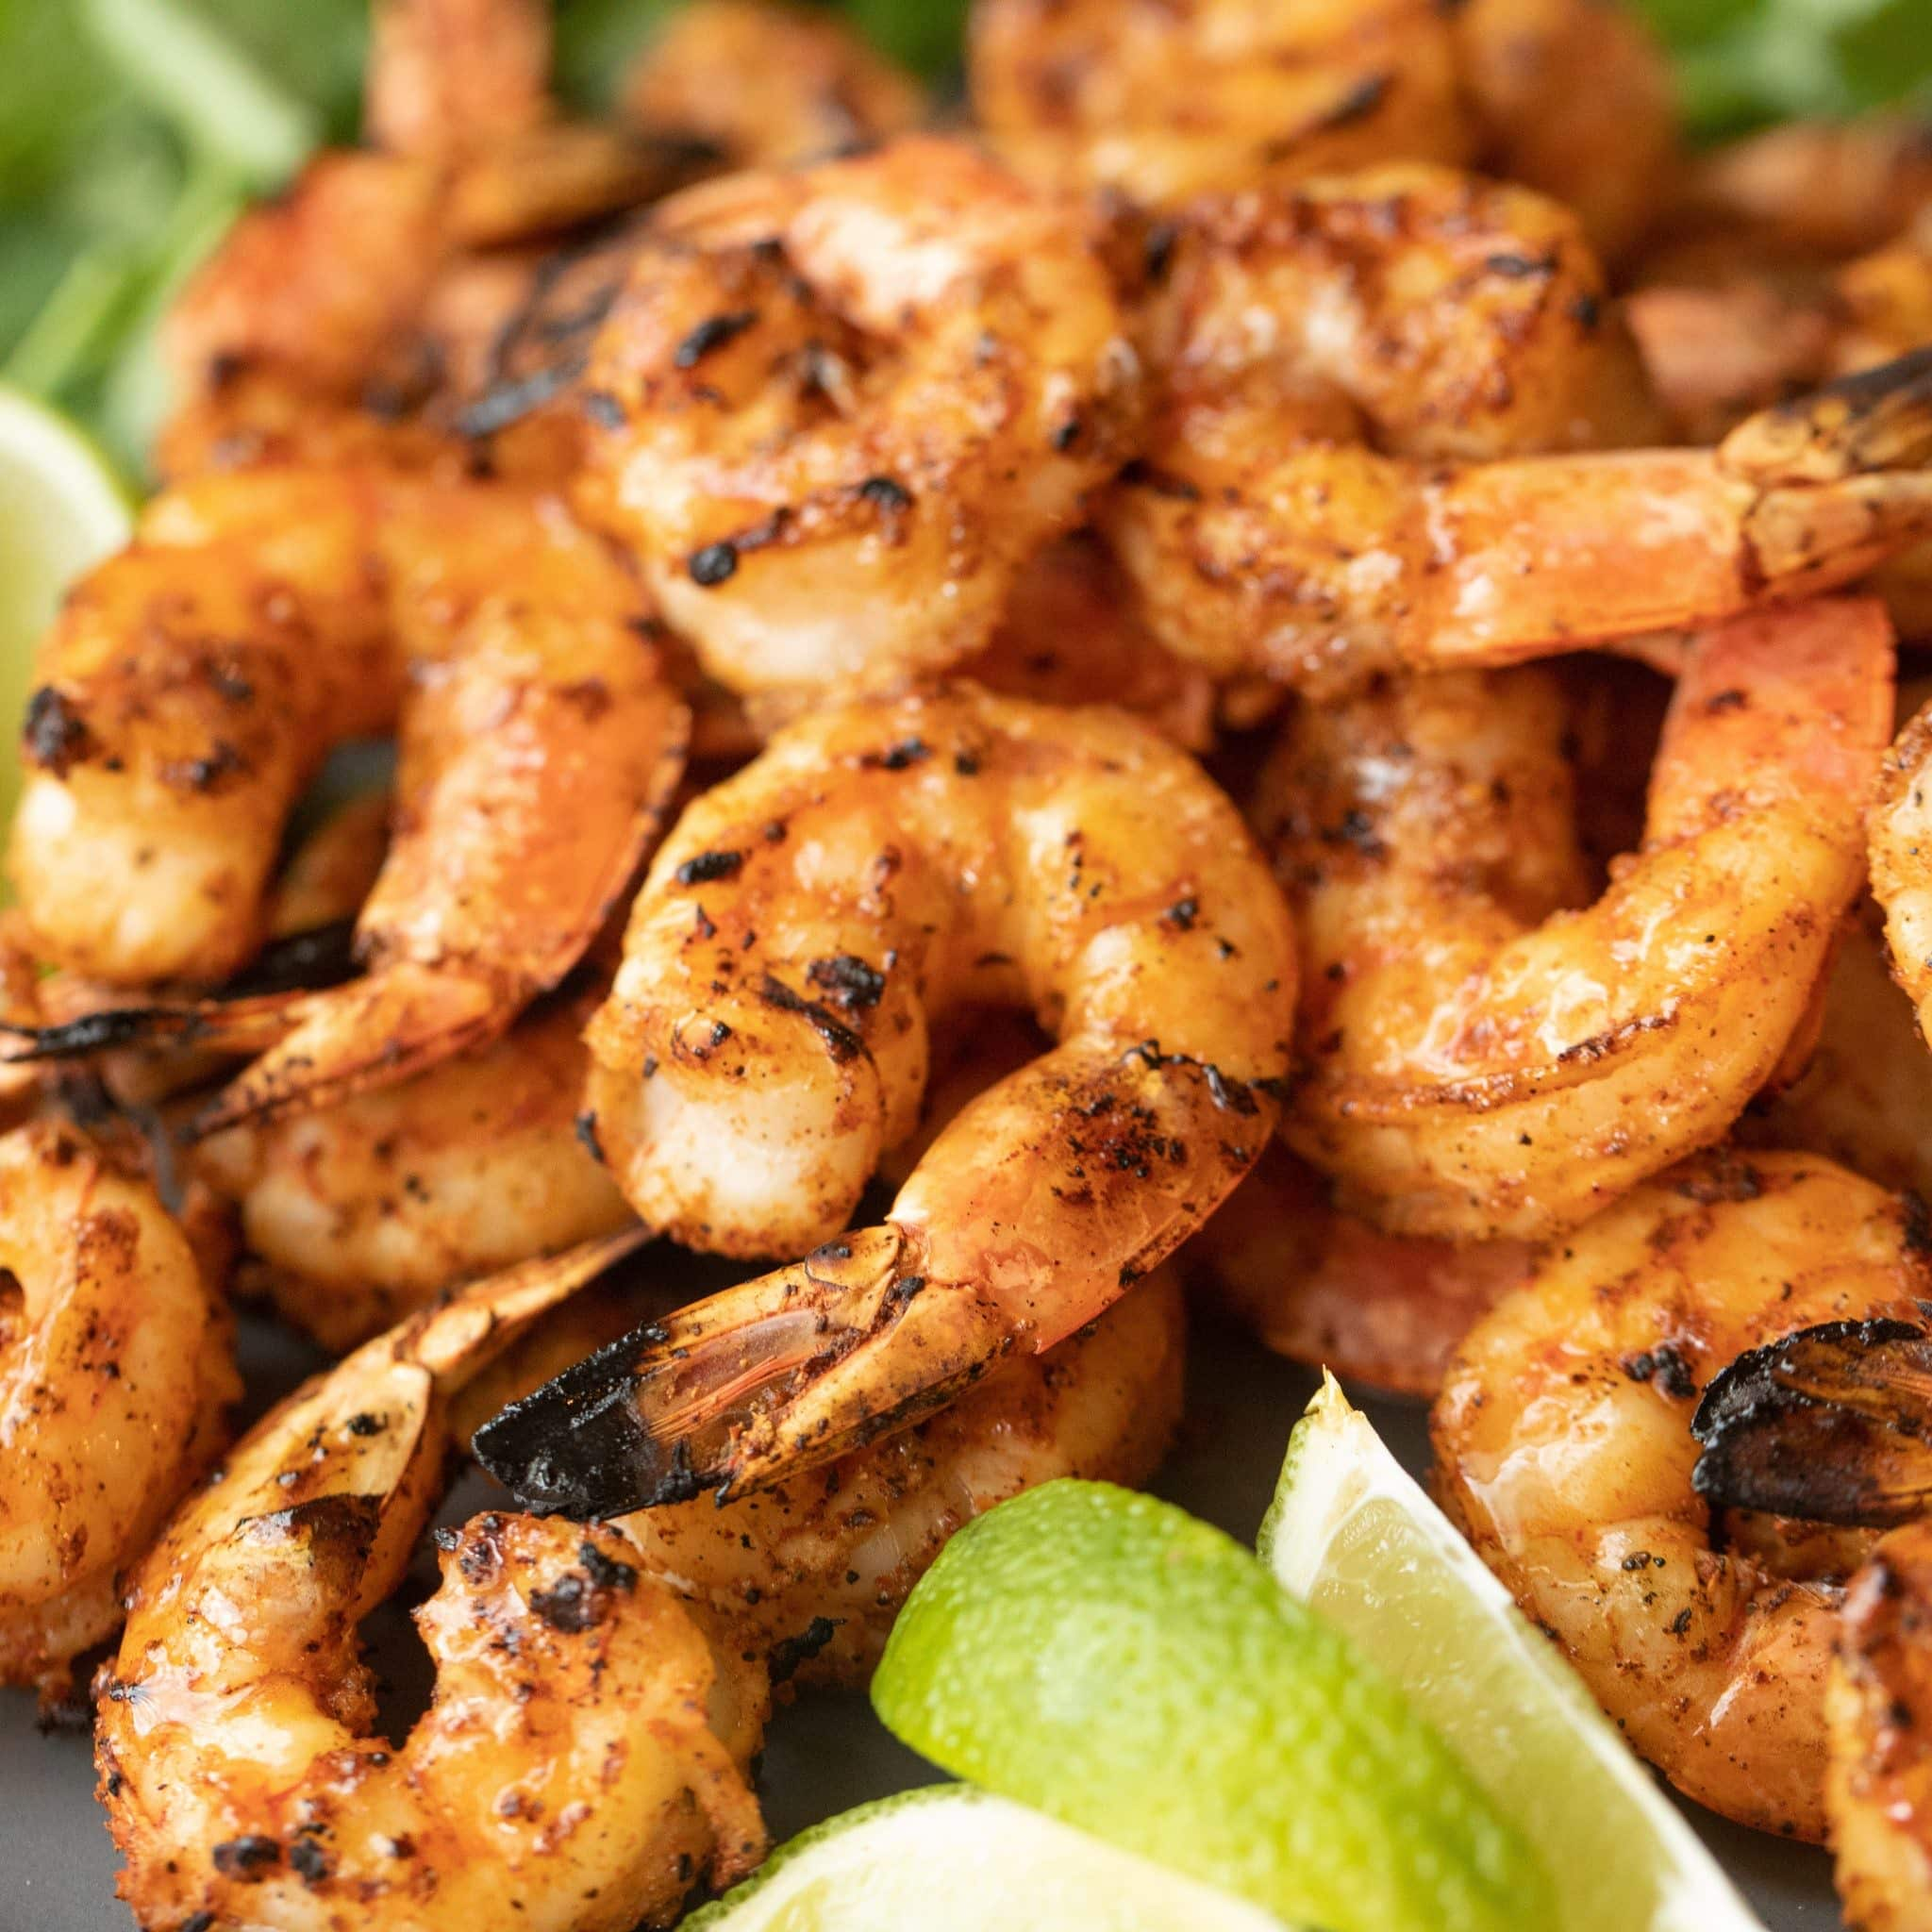 GRILLED SHRIMP RECIPE 2 SCALED CAMARONES A LA PARRILLA CON SALSA DE LIMÓN Y CHILE